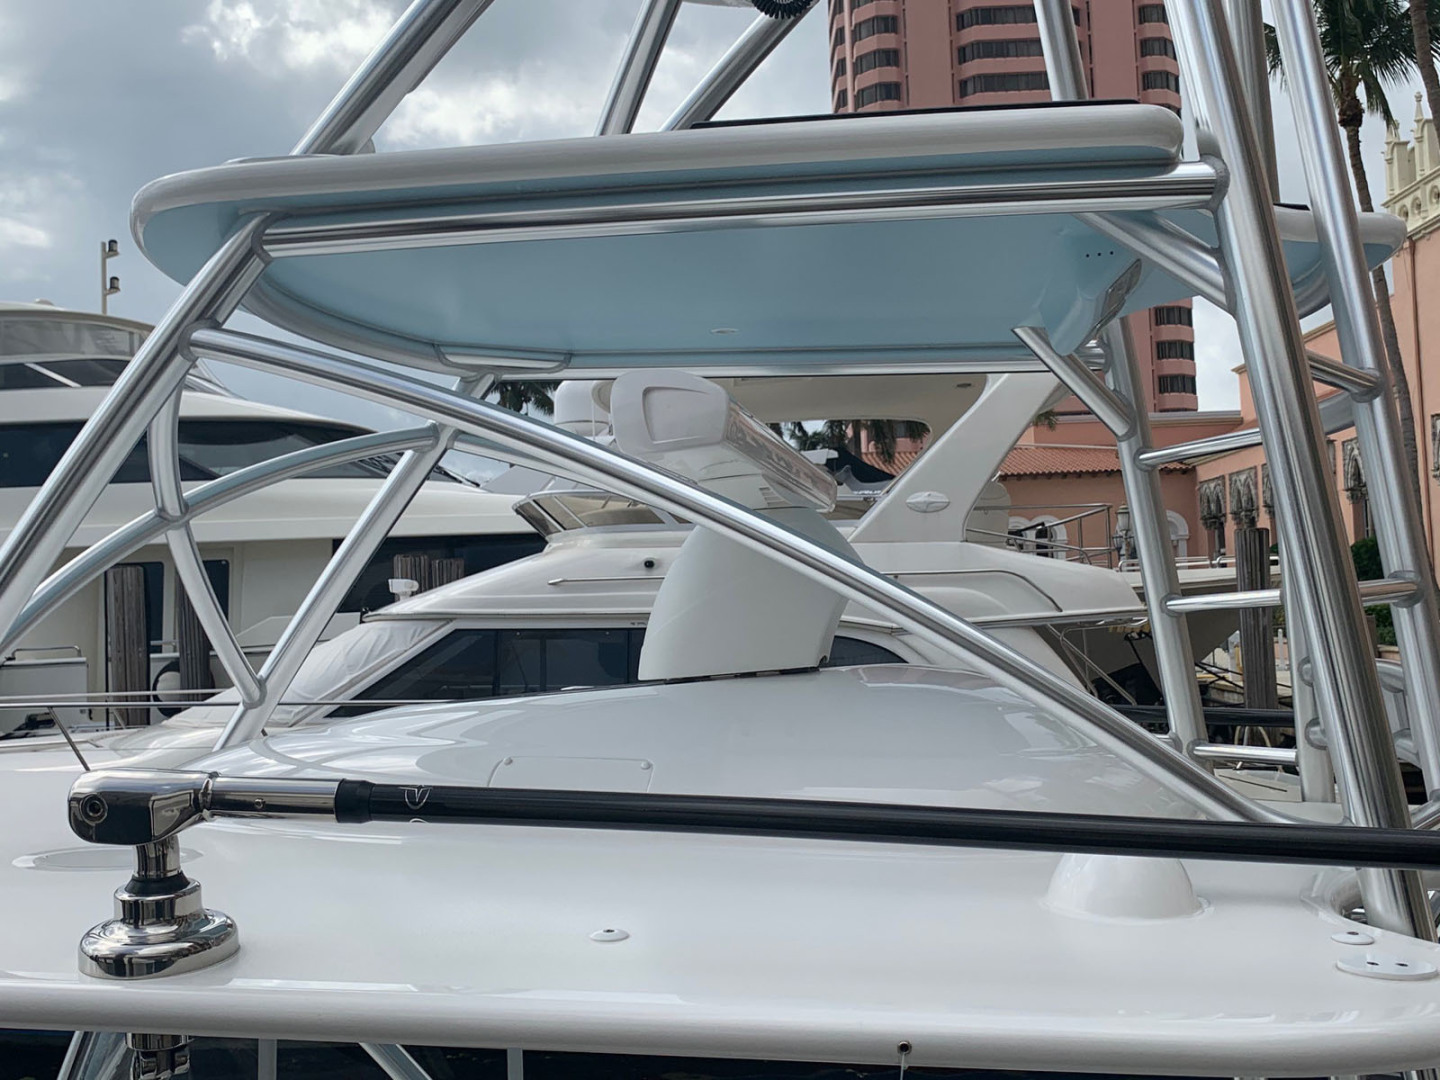 Contender-39 Step Hull w/SeaKeeper 2019-T/T Double Barrel Name Reserved Boca Raton-Florida-United States-Tower Hardtop-1558940   Thumbnail